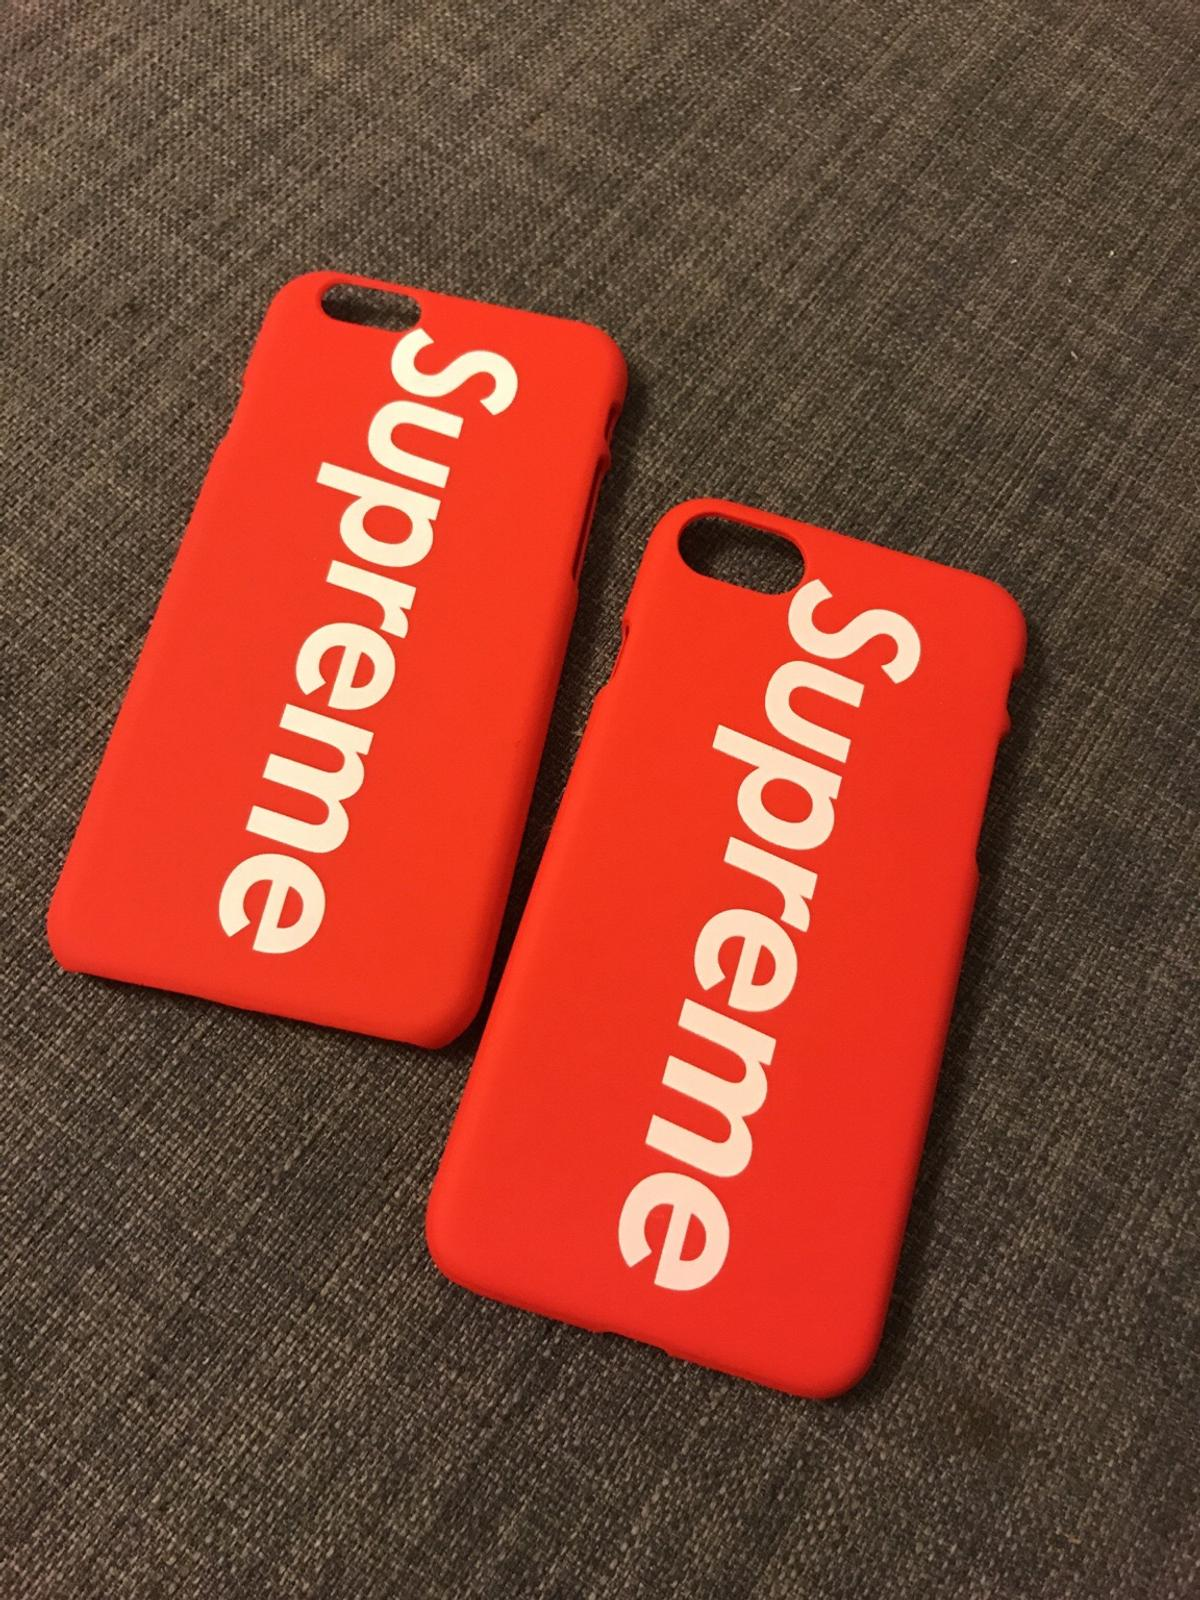 Supreme Phone Case In Langley For £10 00 For Sale | Shpock